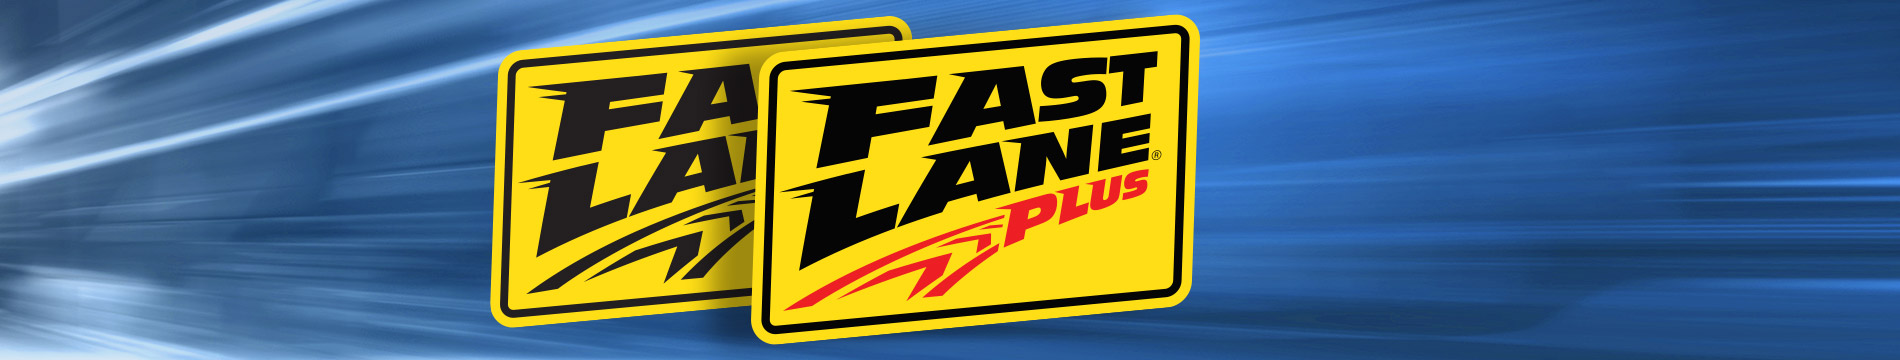 CaroWinds Coupon Codes All Coupons (13) Coupon Codes (2) Online Sales (11) Fast Lane as low as $35, Fast Lane Plus as low as $ Make the most of your visit. Speed past the lines on some of your favorite rides all day. Fast Lane online as low as $35, Fast Lane Plus online as low as $ Get Deal. Add Comment | shared by ramana_forums.